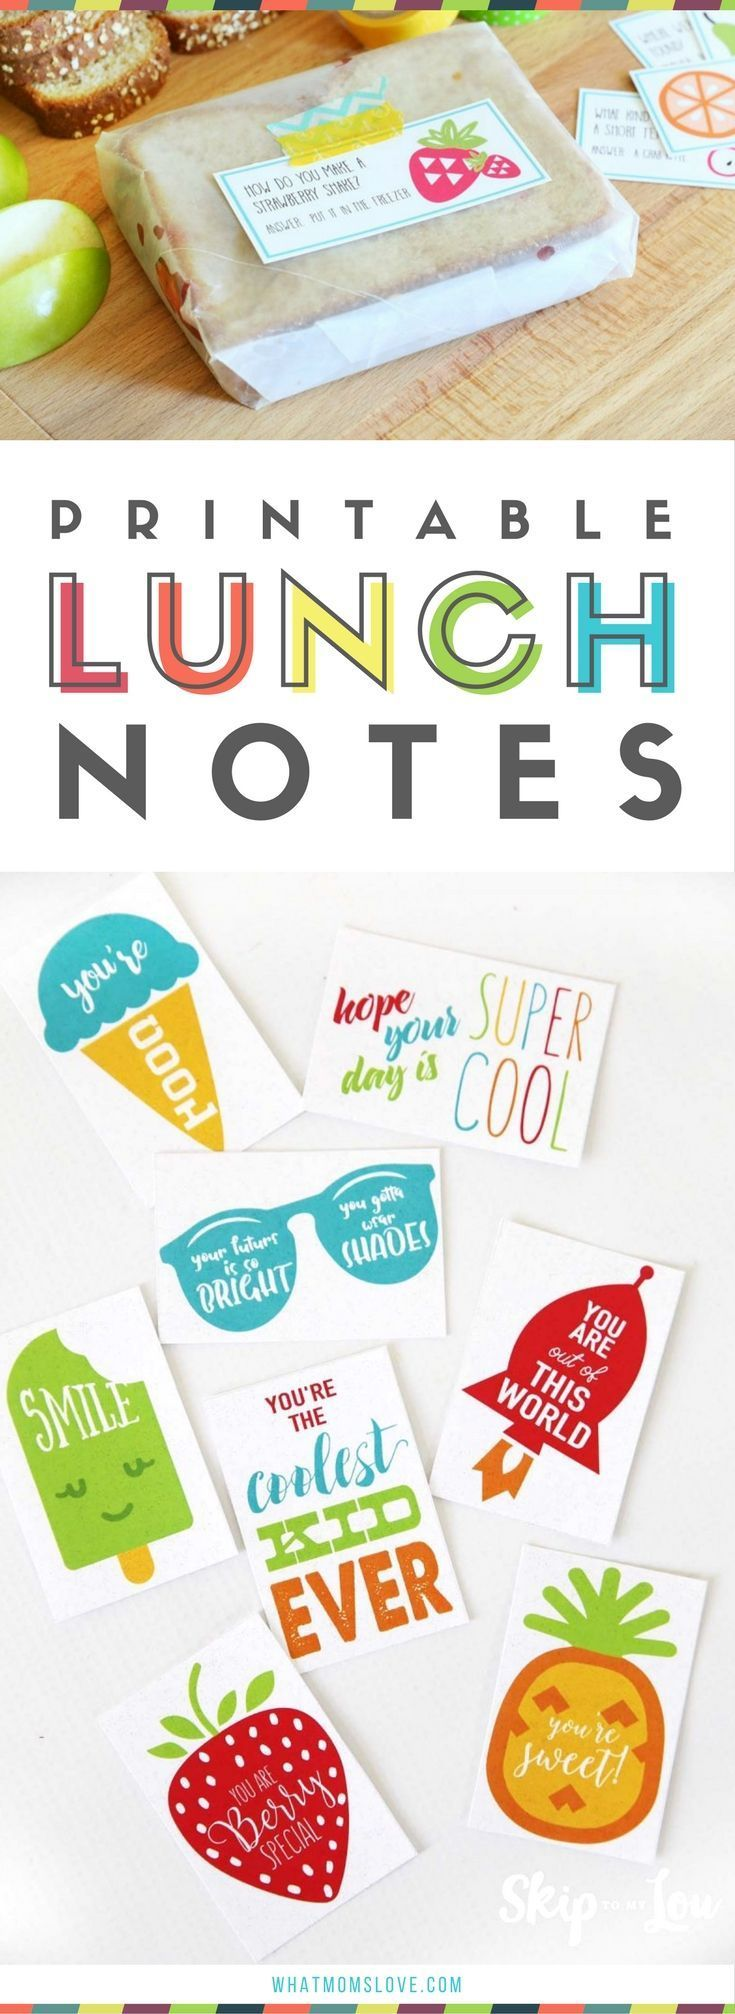 Printable Lunch Notes for kids school lunch box   Funny jokes and sweet encouragement for girls